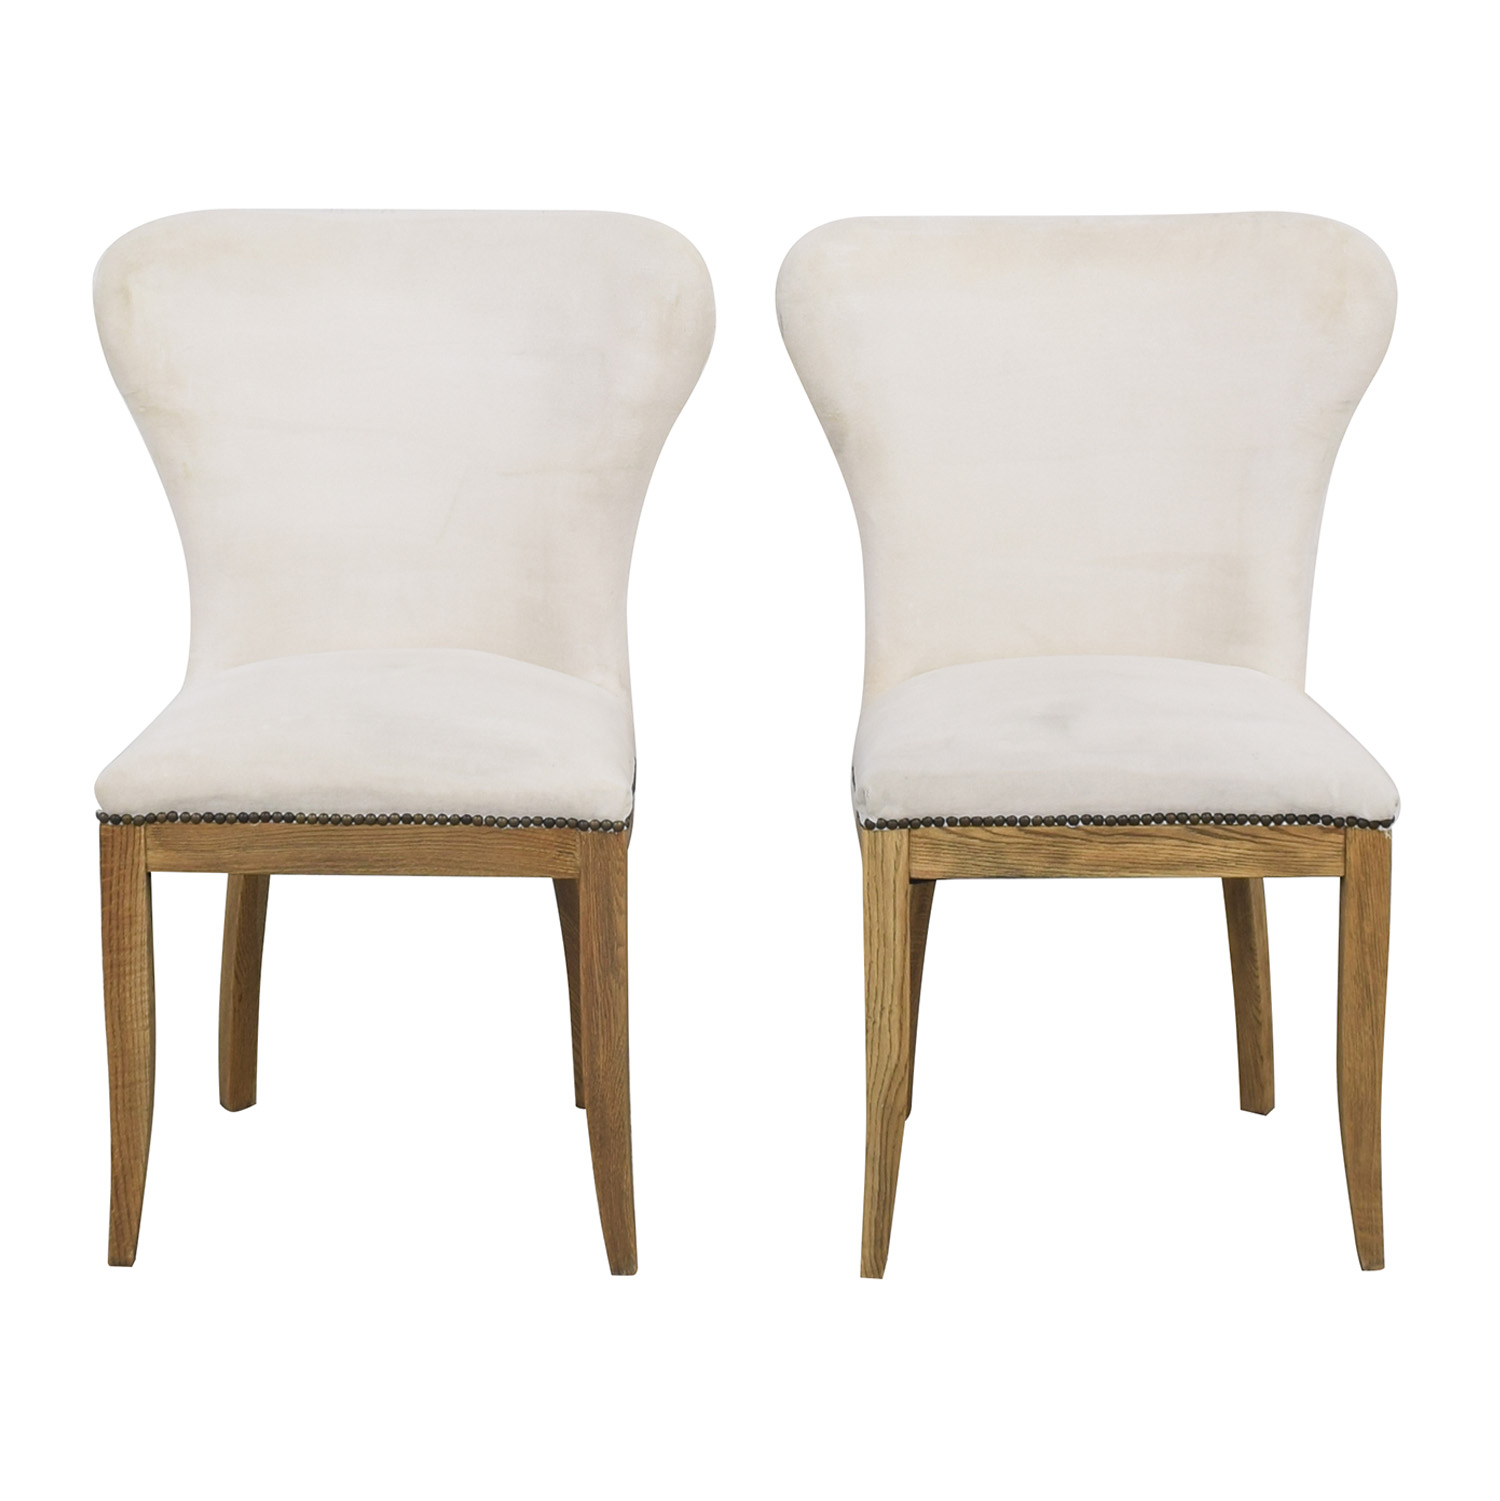 Restoration Hardware Restoration Hardware Upholstered Dining Chairs ct